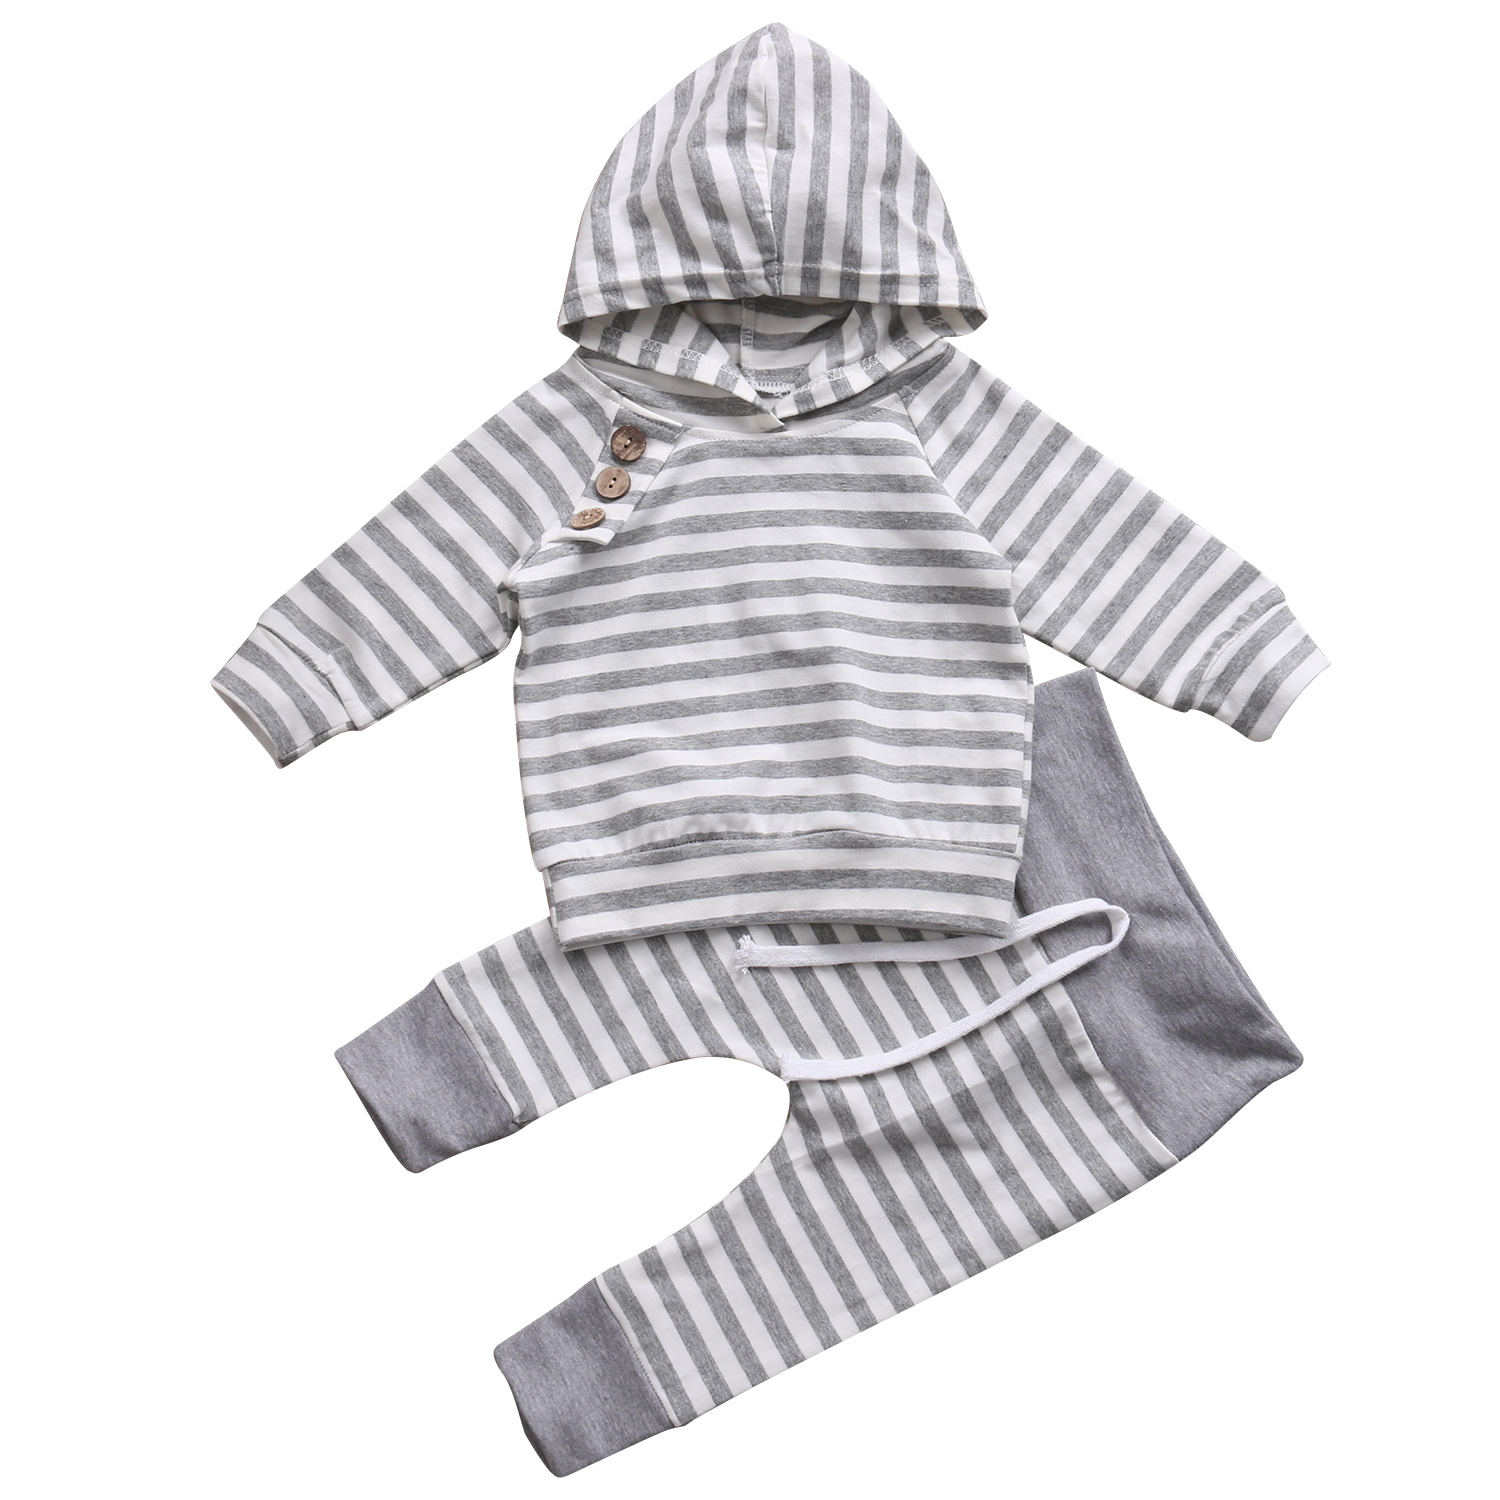 Baby Girl Boy Autumn Clothes Set 2017 Hot Sales Striped Infant Baby Boy Girl Hooded Tops Pants Home Outfits Set Clothes Set